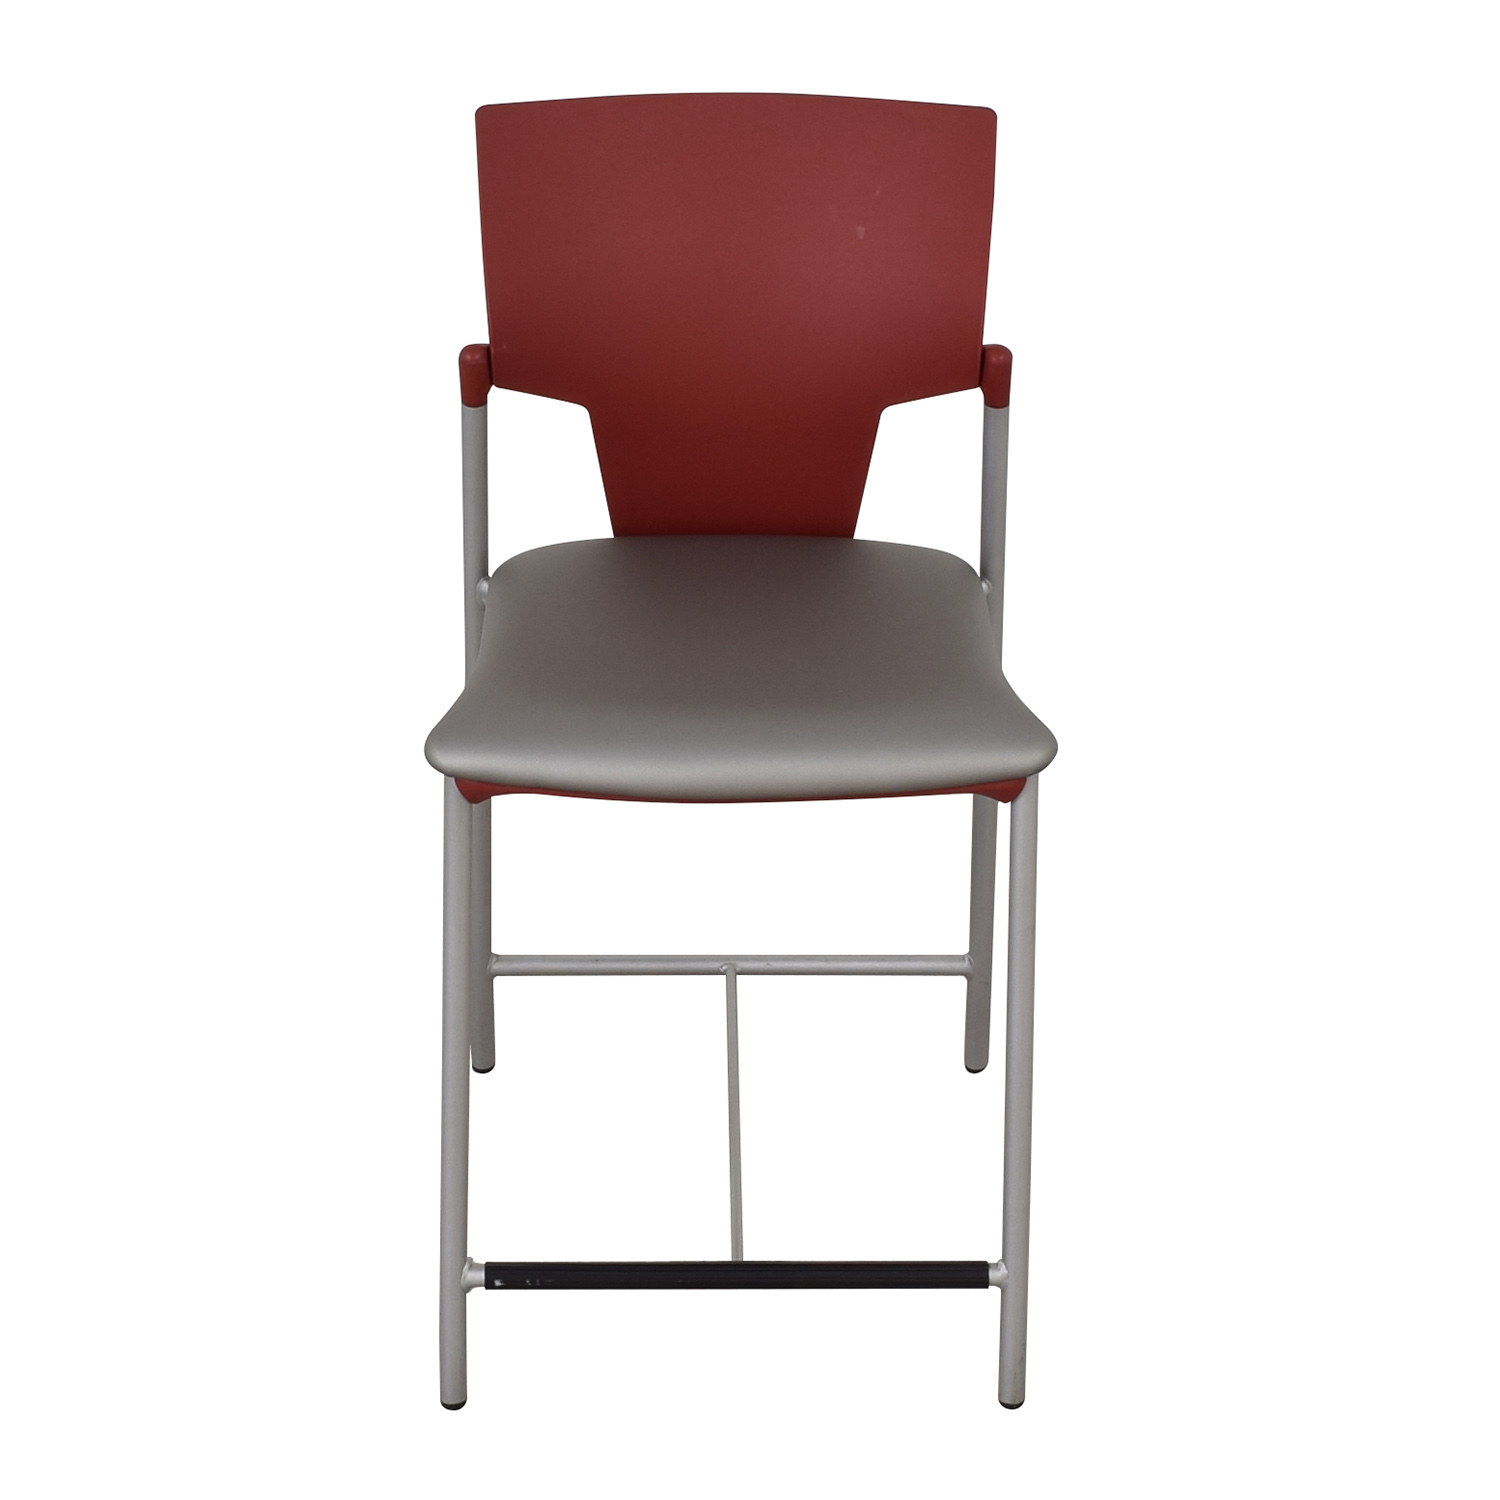 Officeworks Officeworks Bar Stool on sale